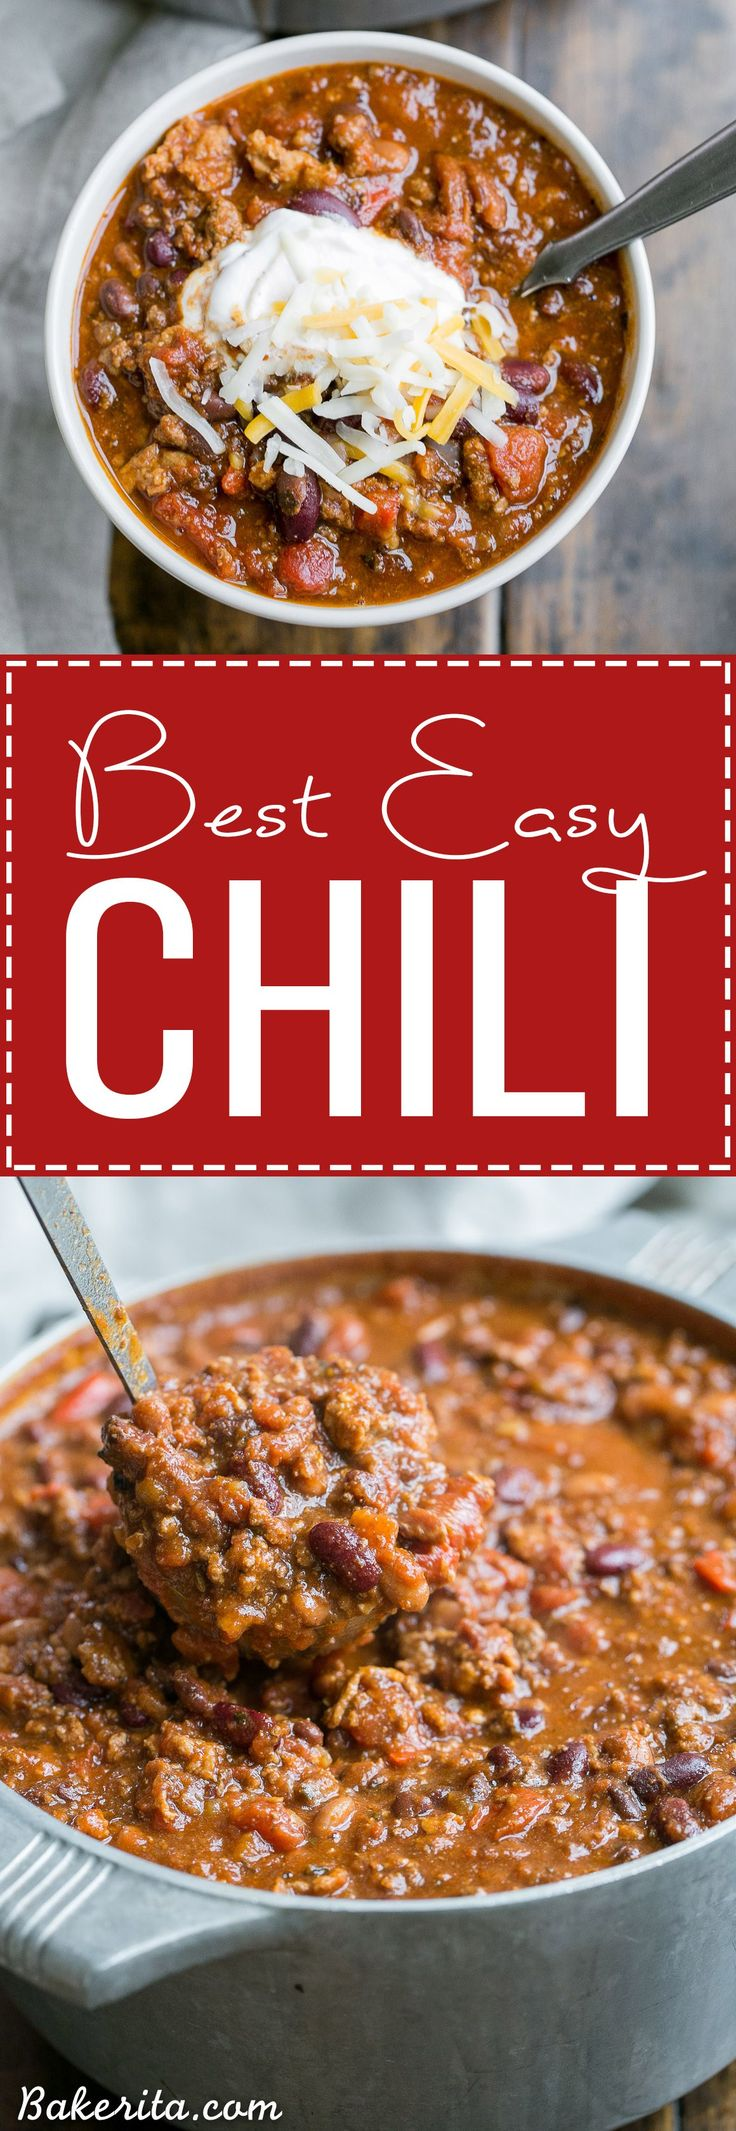 This recipe for My Best Chili is a major favorite around here! It's a hearty, warming chili made with ground beef, bacon, sausage, and just the right amount of kick.